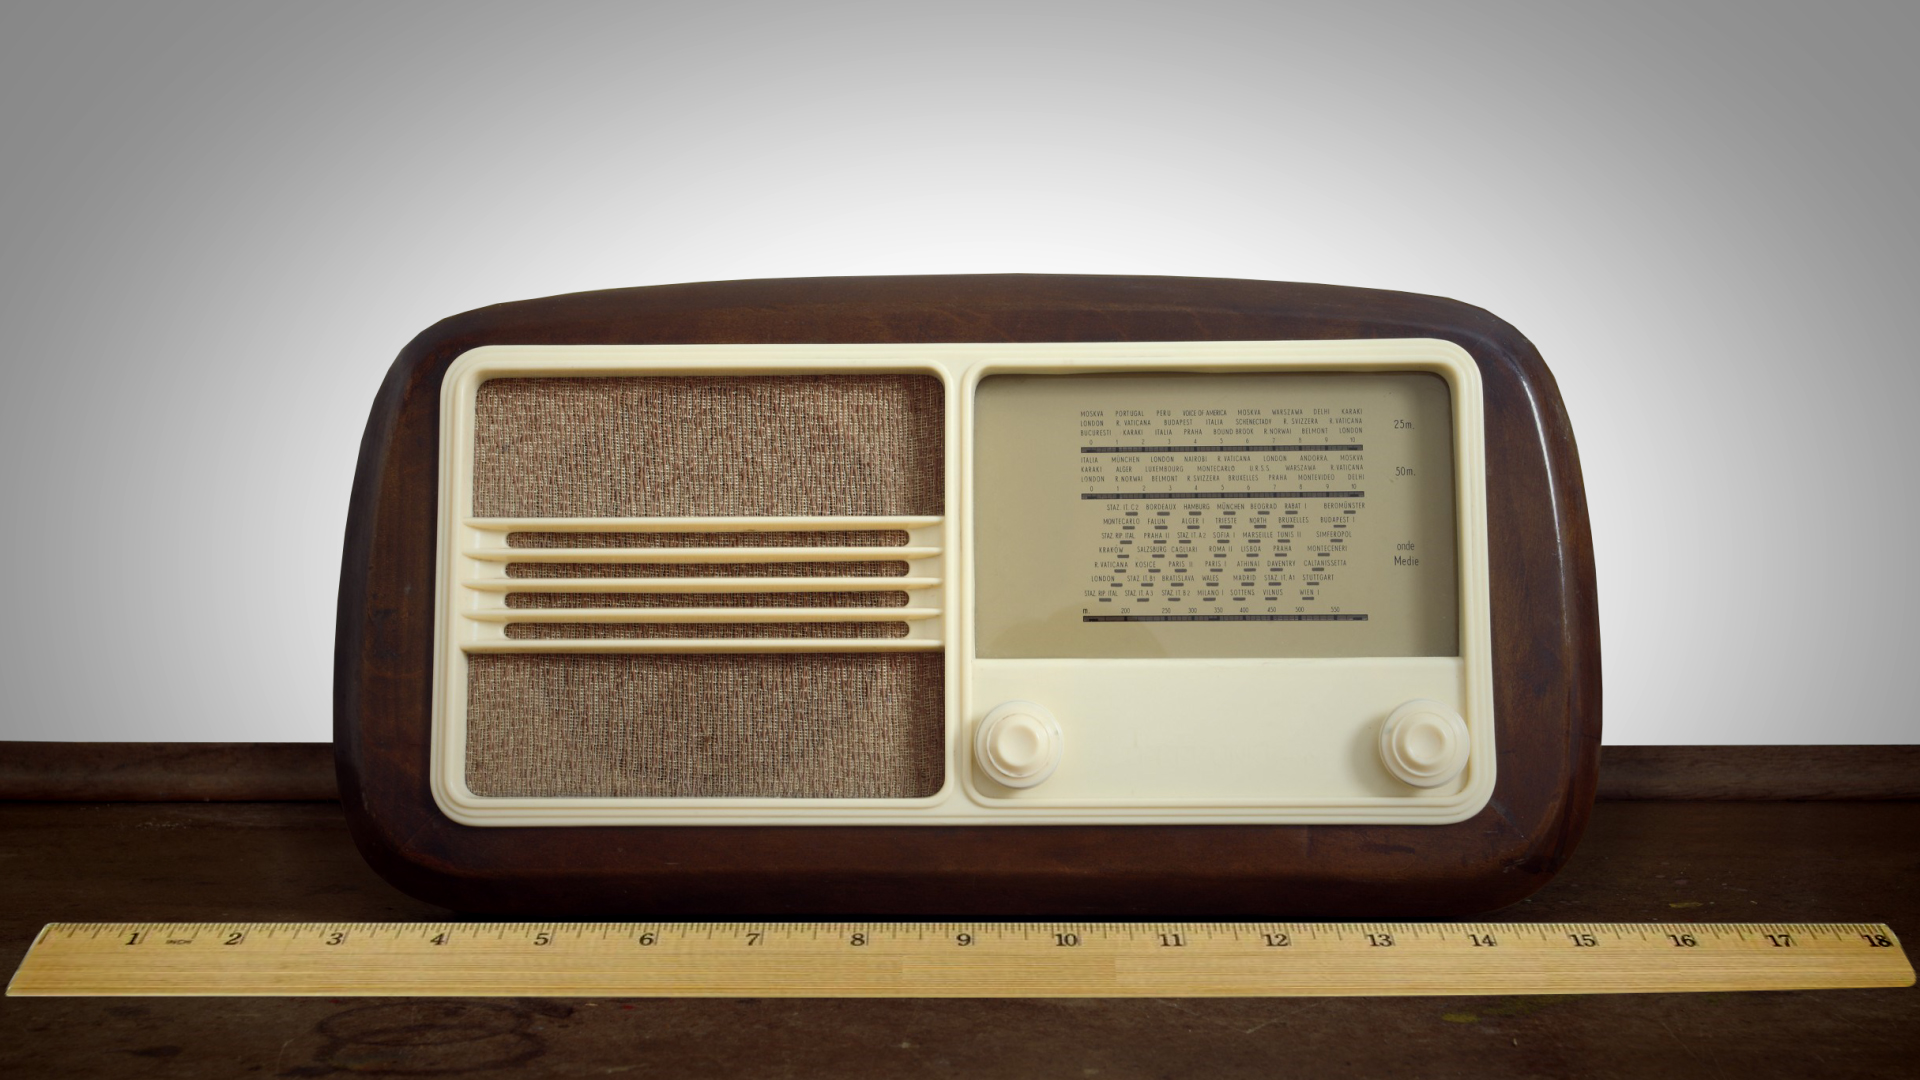 Measuring Radio Effectiveness